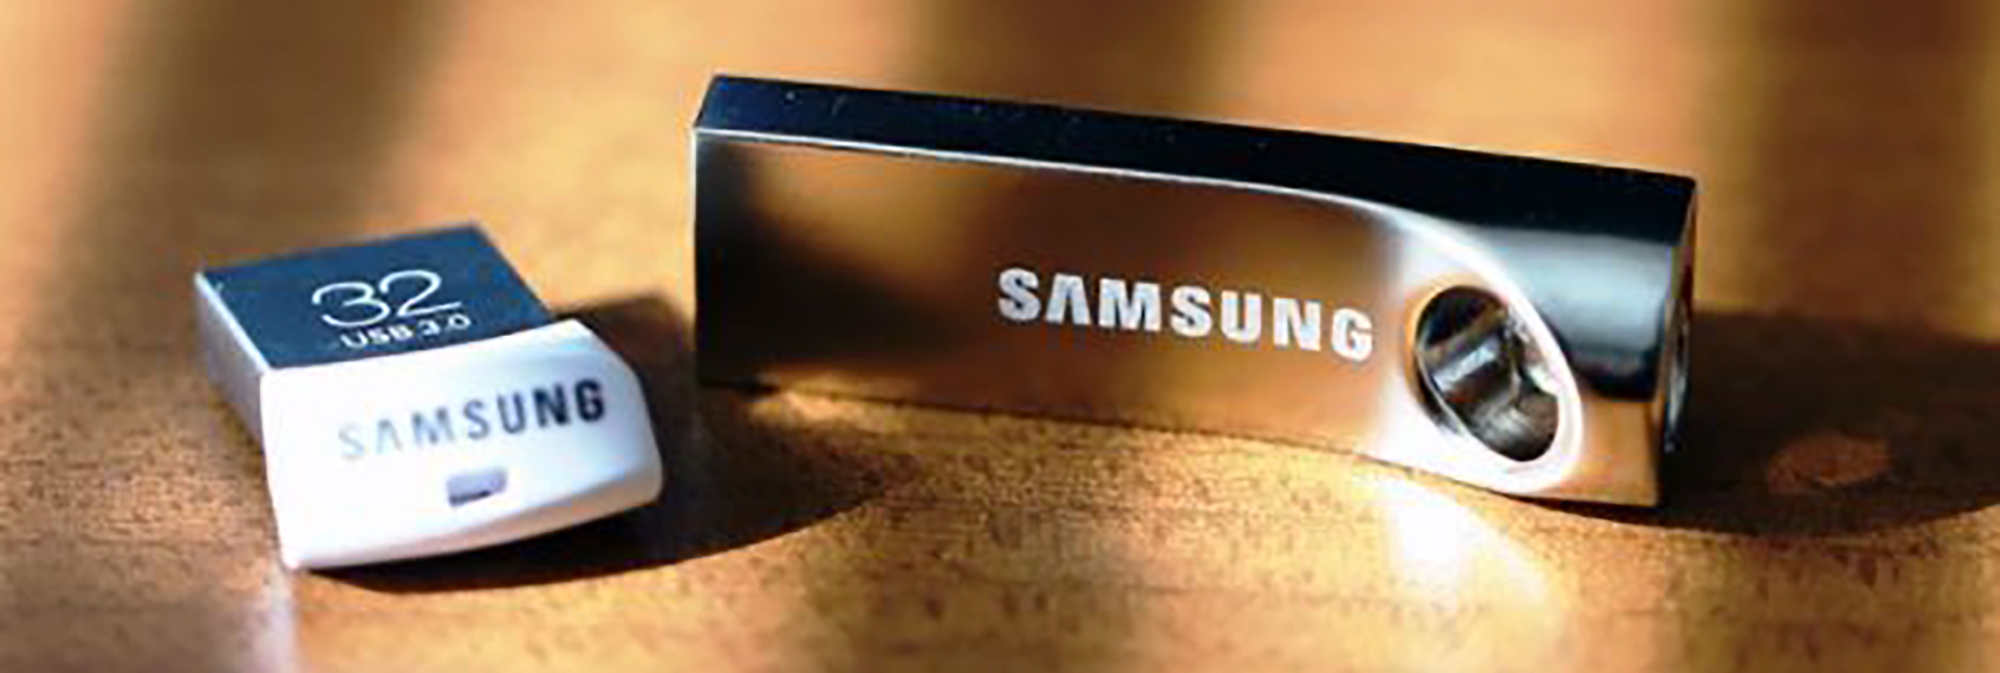 Samsung SSD Flash Products